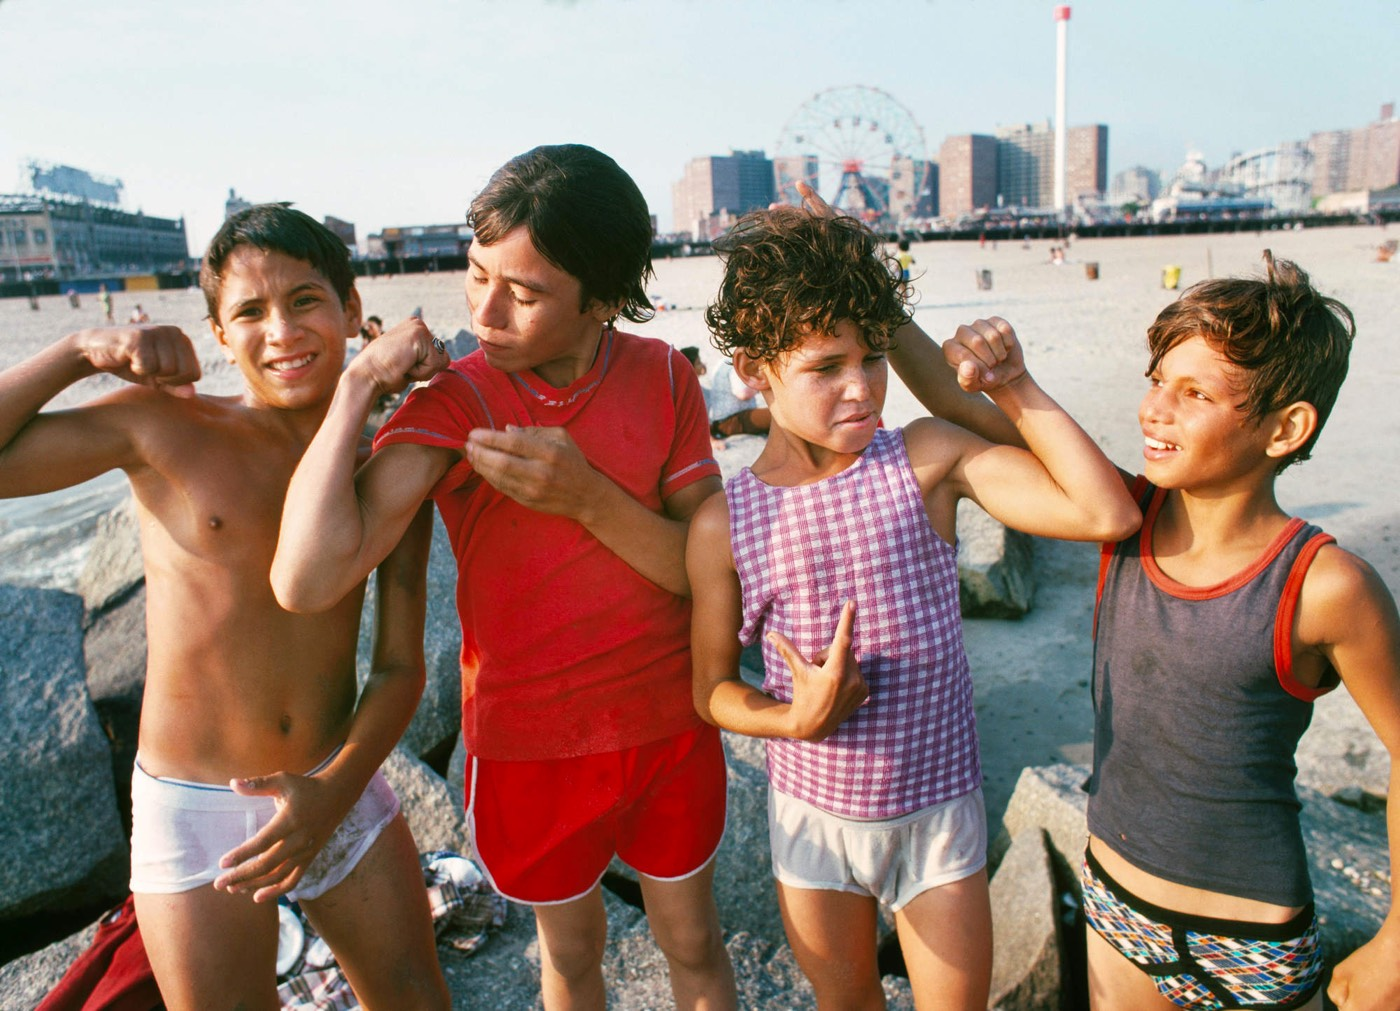 The Summer of '78, NYC in photos